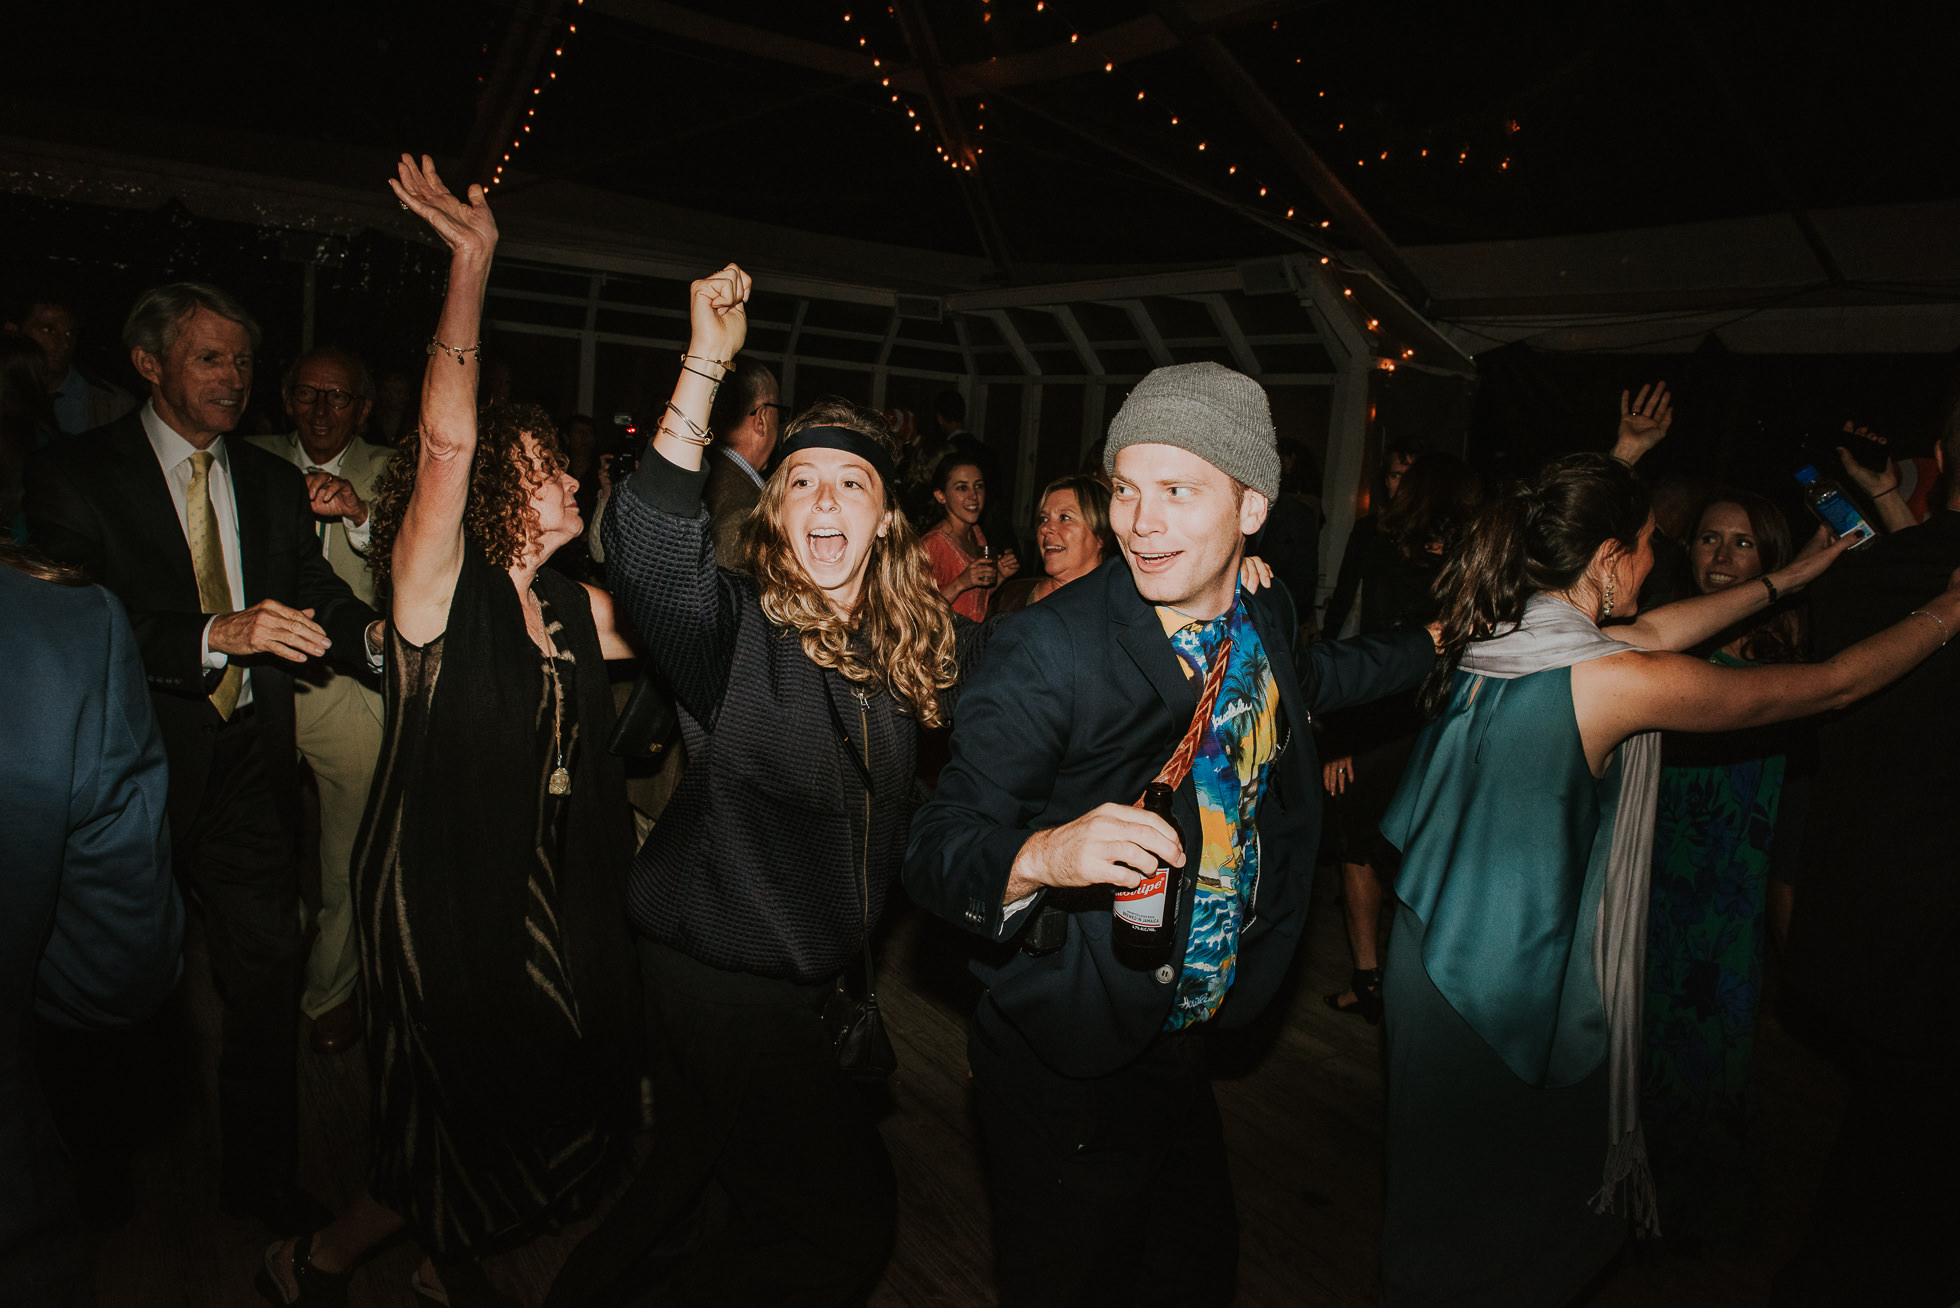 conga line wedding reception Montauk wedding photographed by Traverse the Tides